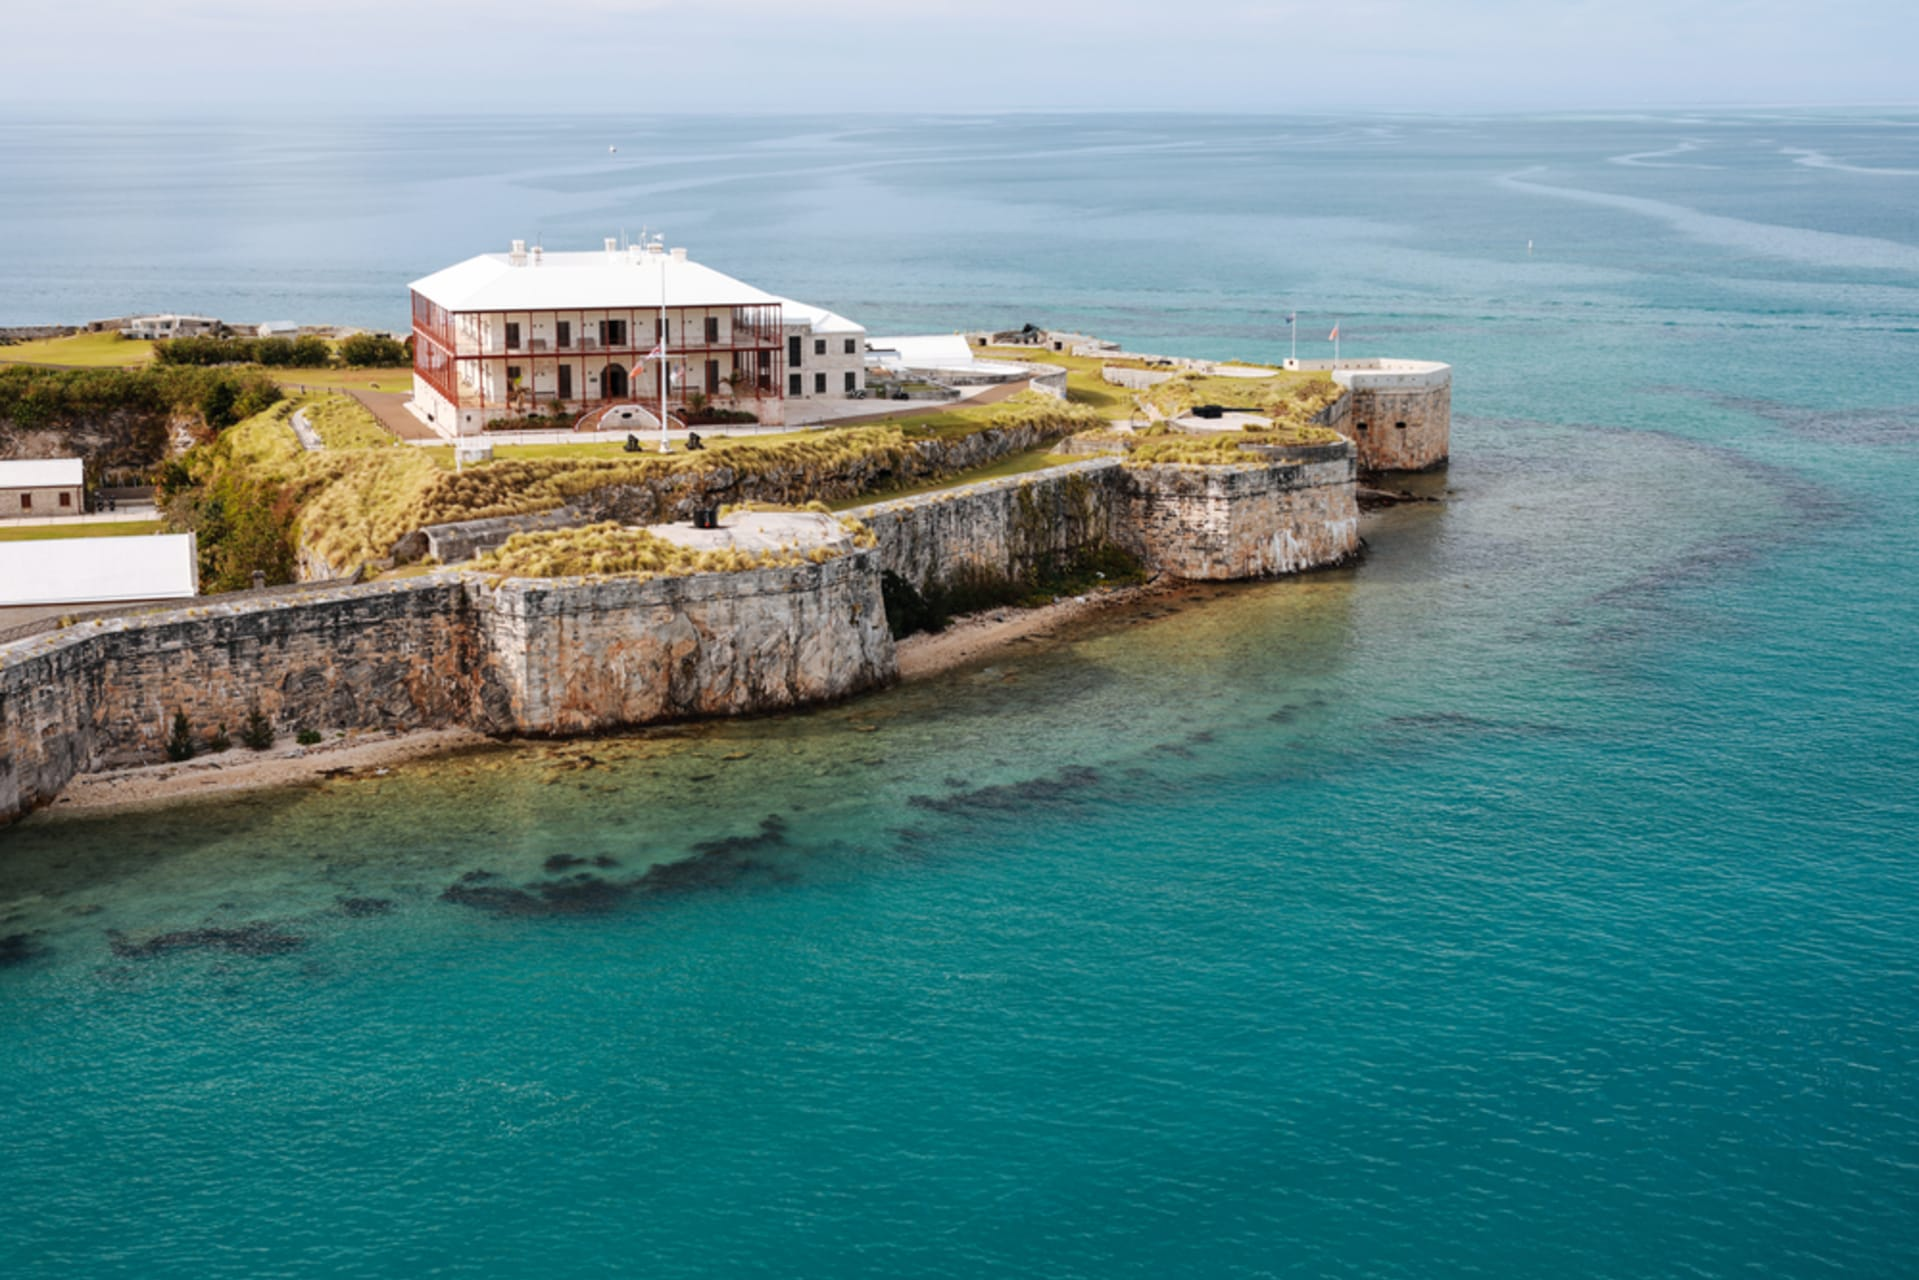 Bermuda - Take the fast ferry with TonyB for the Royal Naval Dockyard Tour